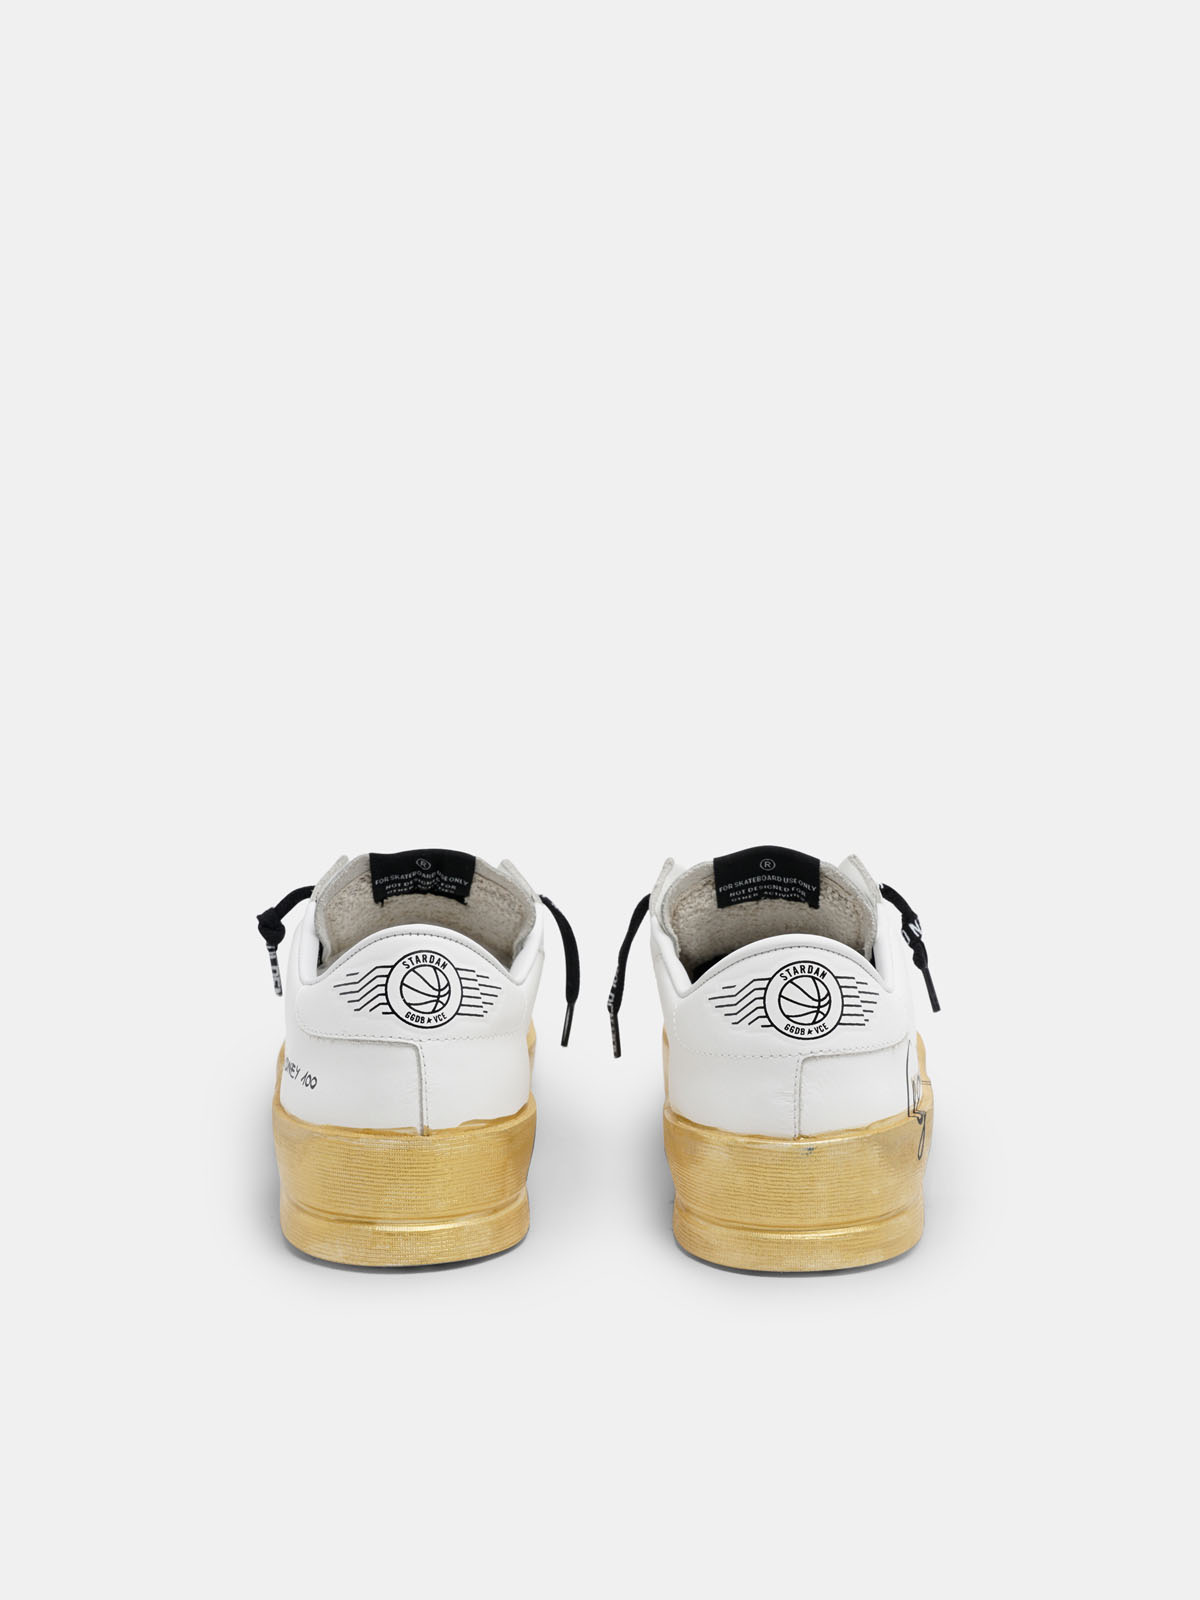 Golden Goose - Women's sneakers Stardan Limited Edition Sydney 100 in